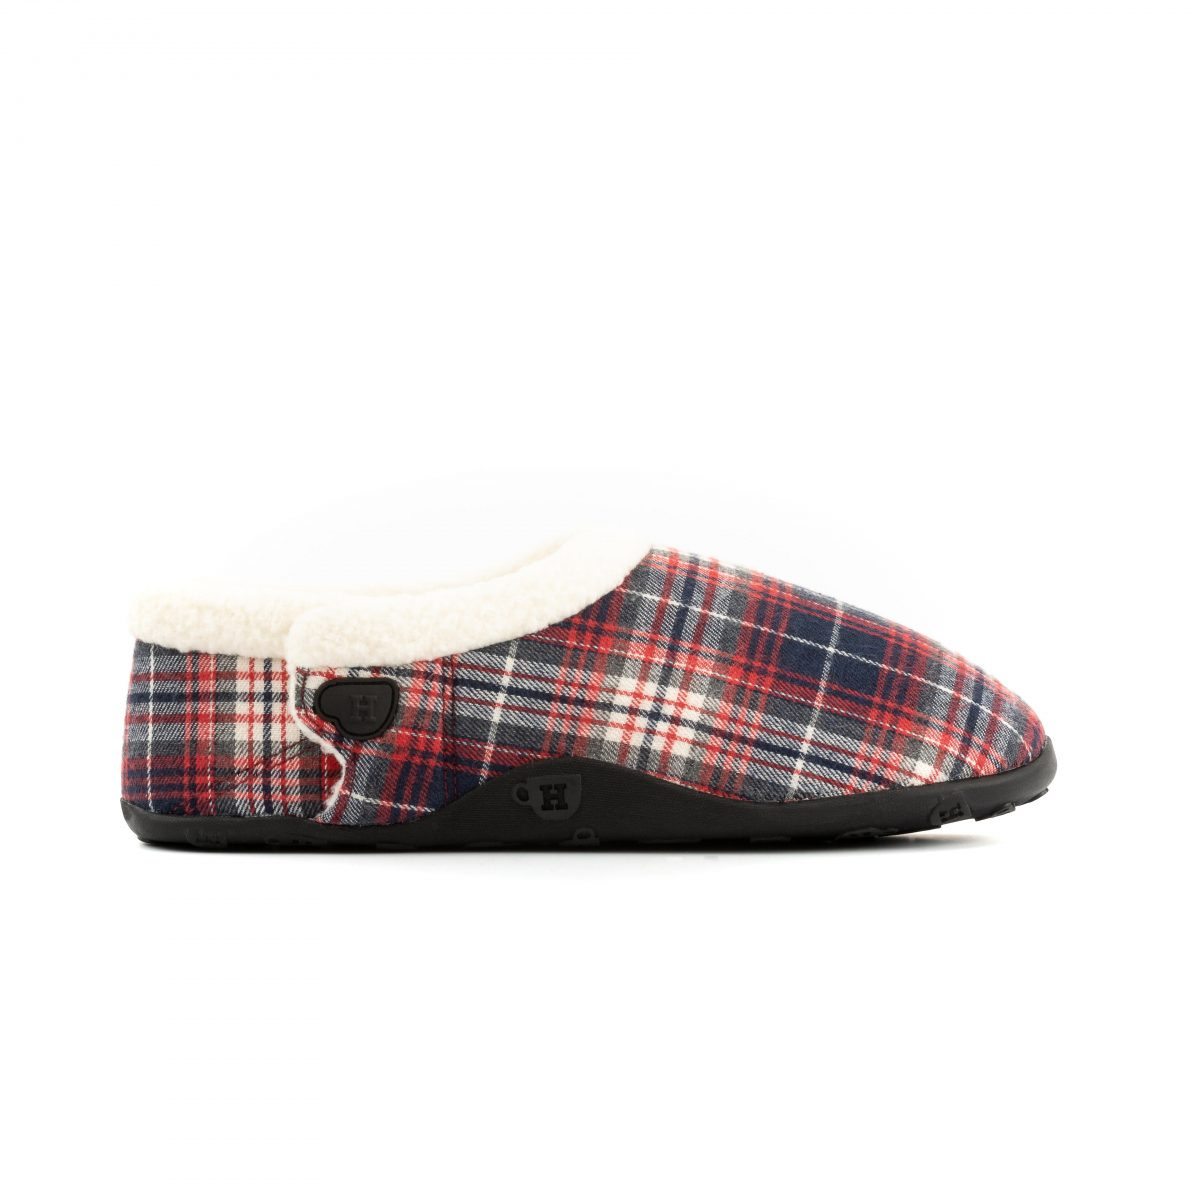 Pete Navy red white check M 3 mr